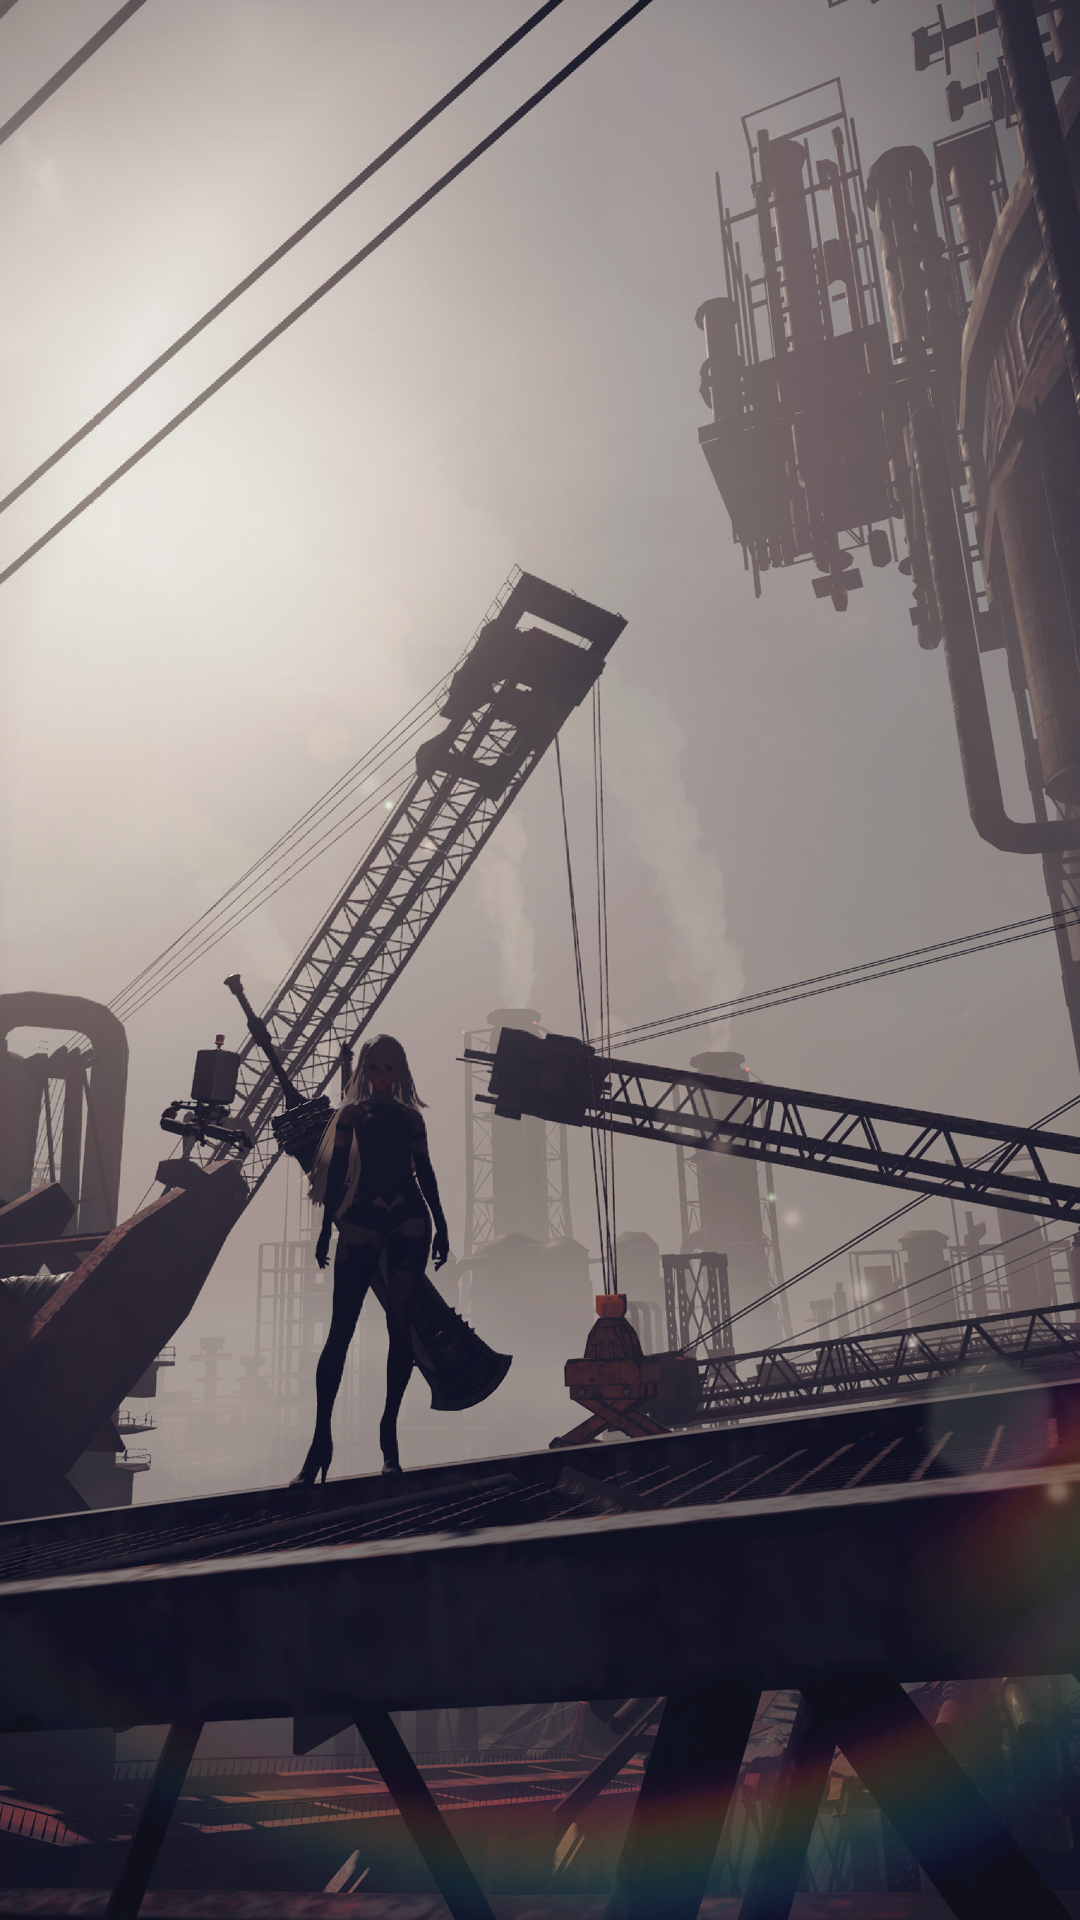 New Nier Automata Screenshots Introduce 9s And A2